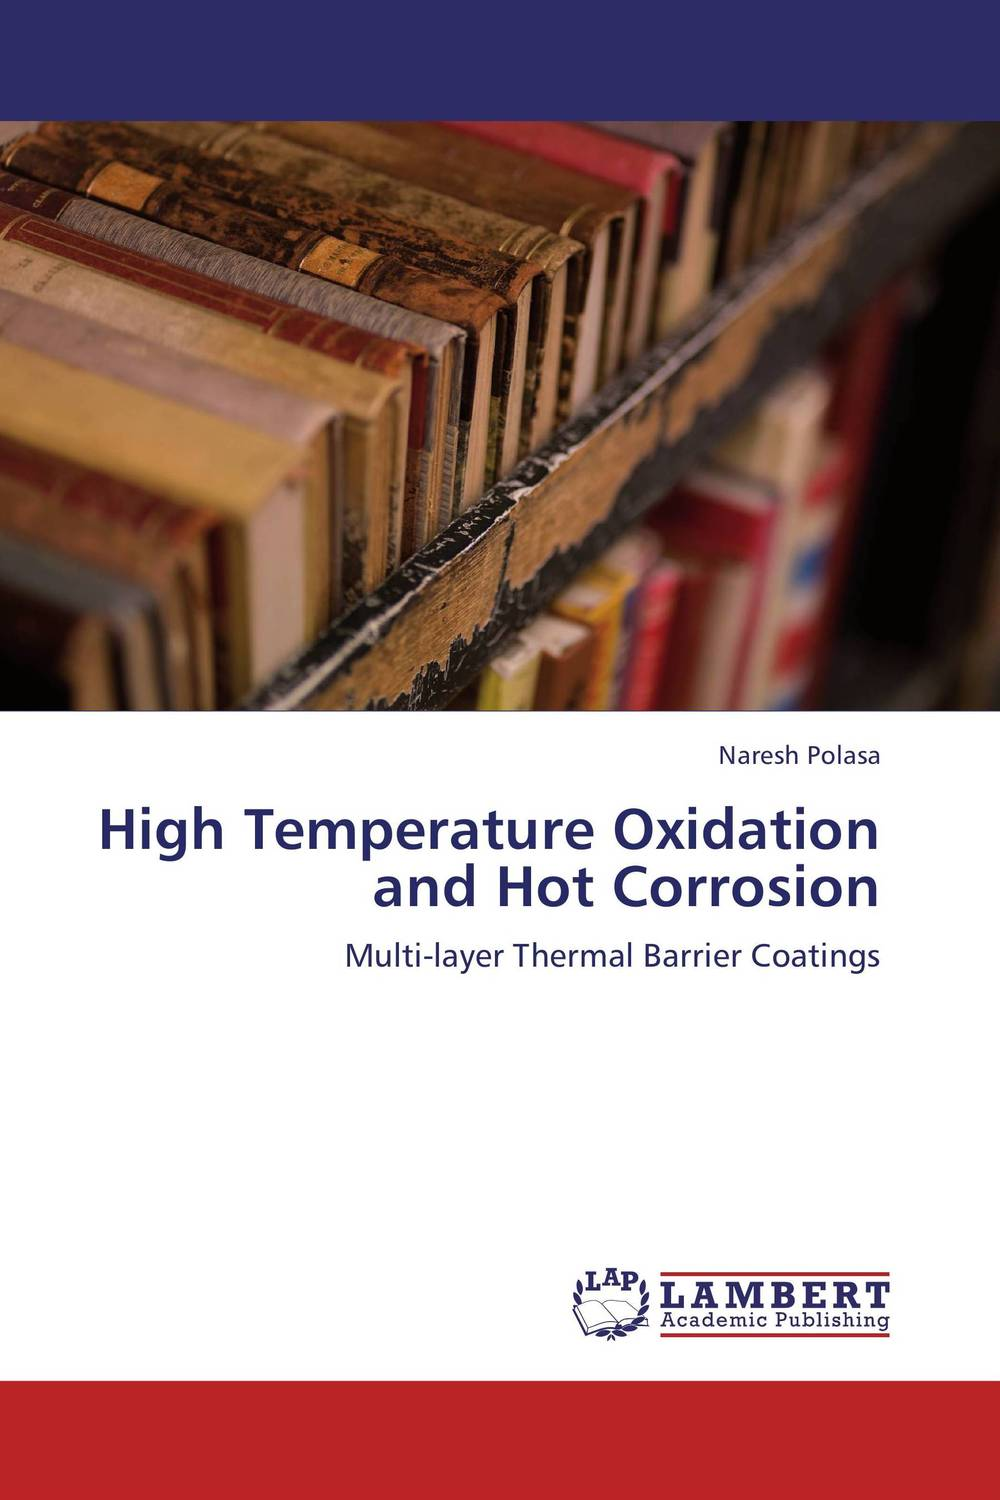 High Temperature Oxidation and Hot Corrosion